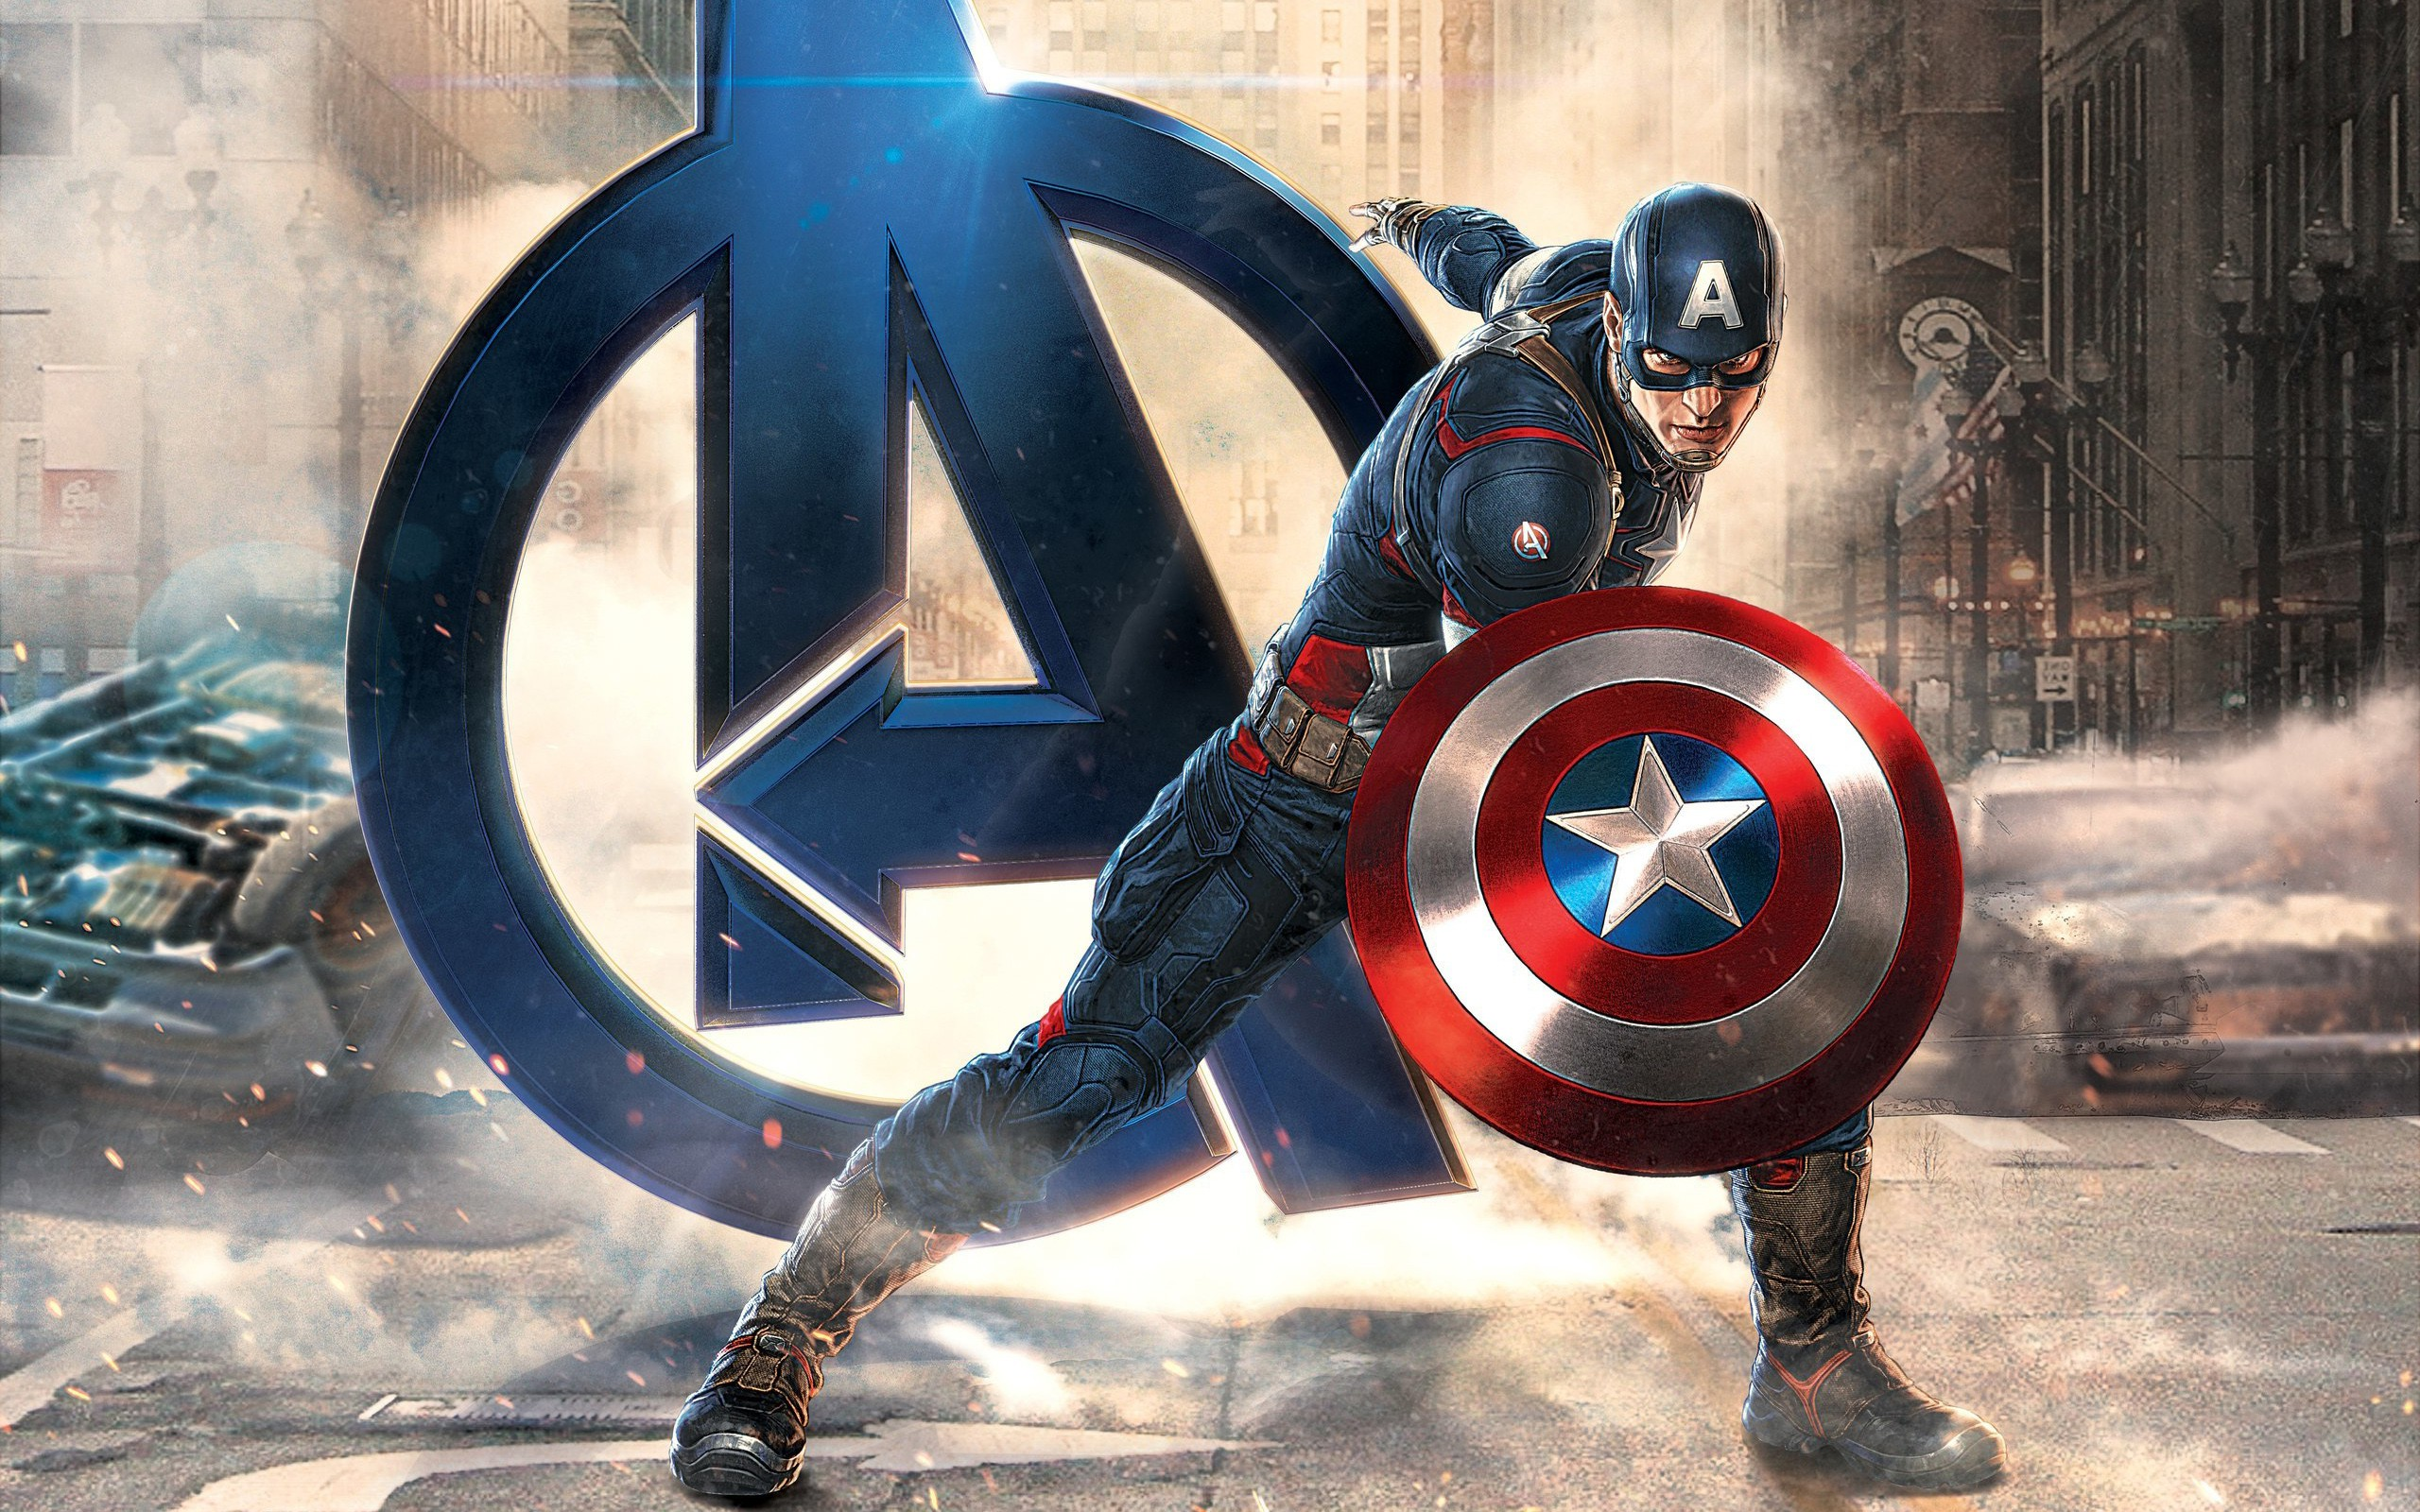 Good Wallpaper Marvel High Resolution - captain-america-avengers  Snapshot_525594.jpg